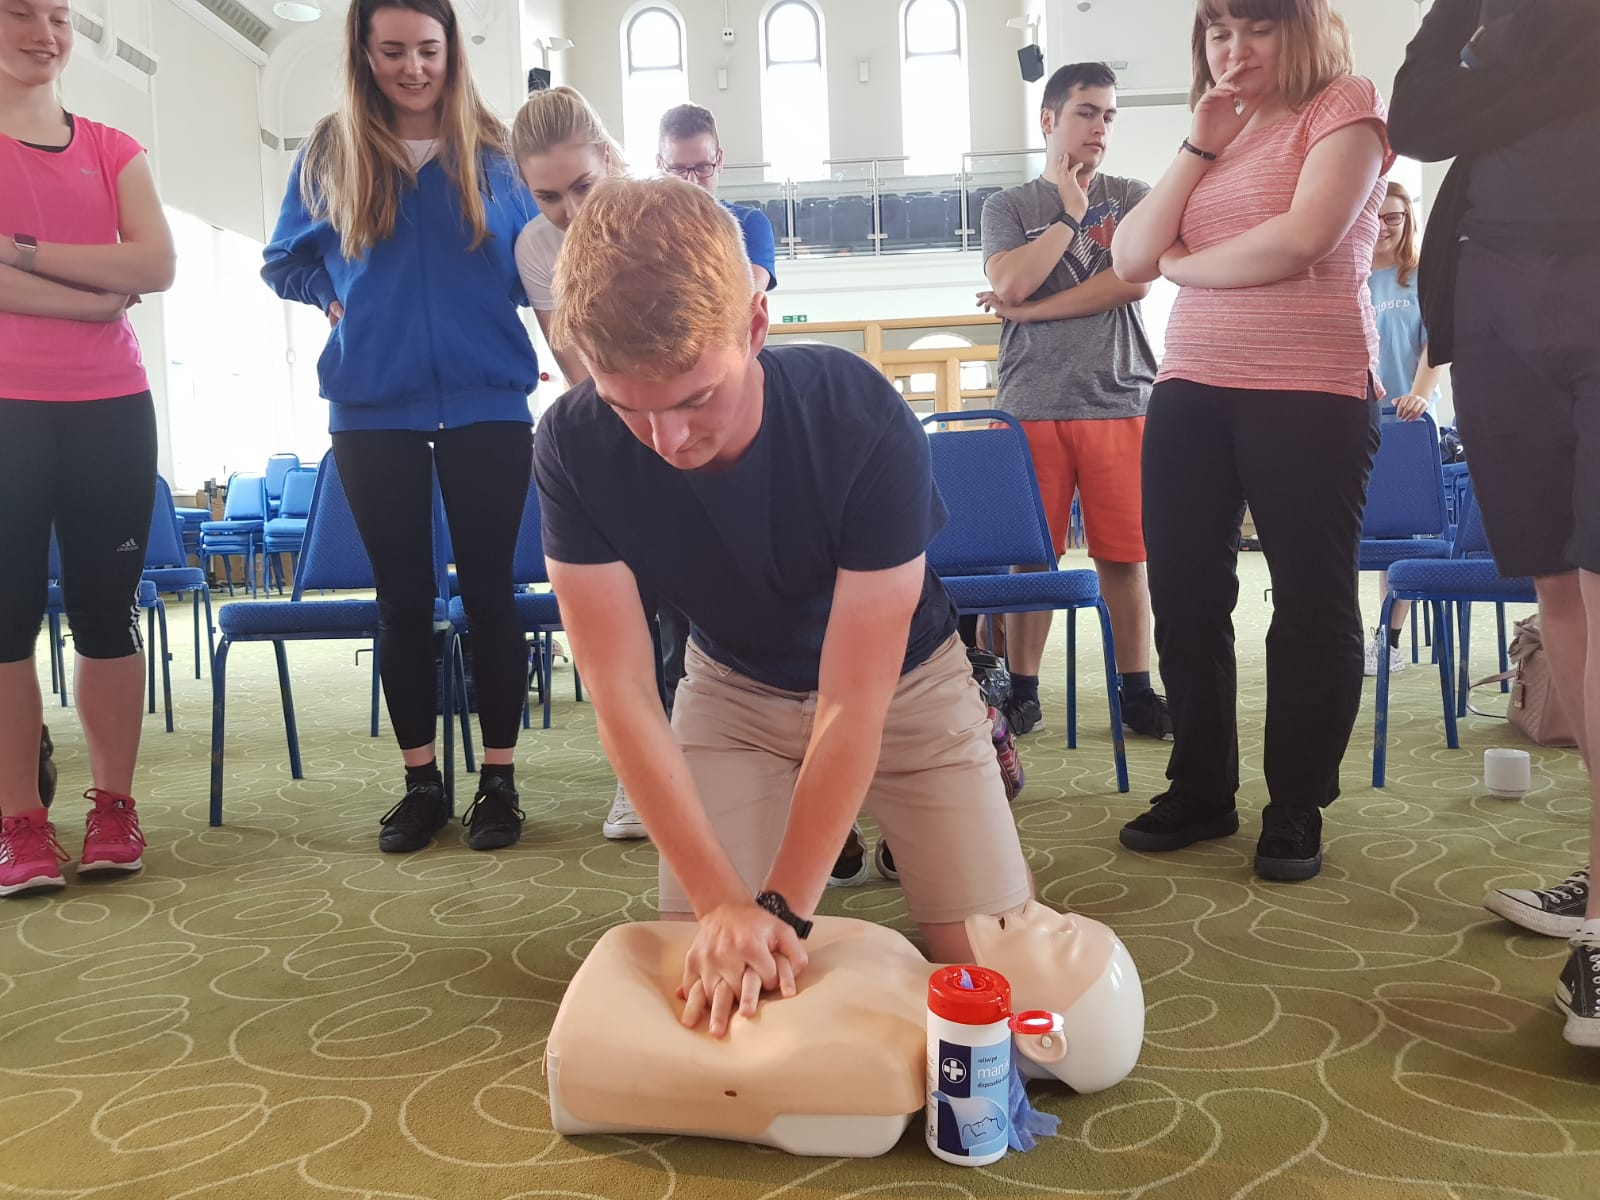 Our first aid session covers some vital information